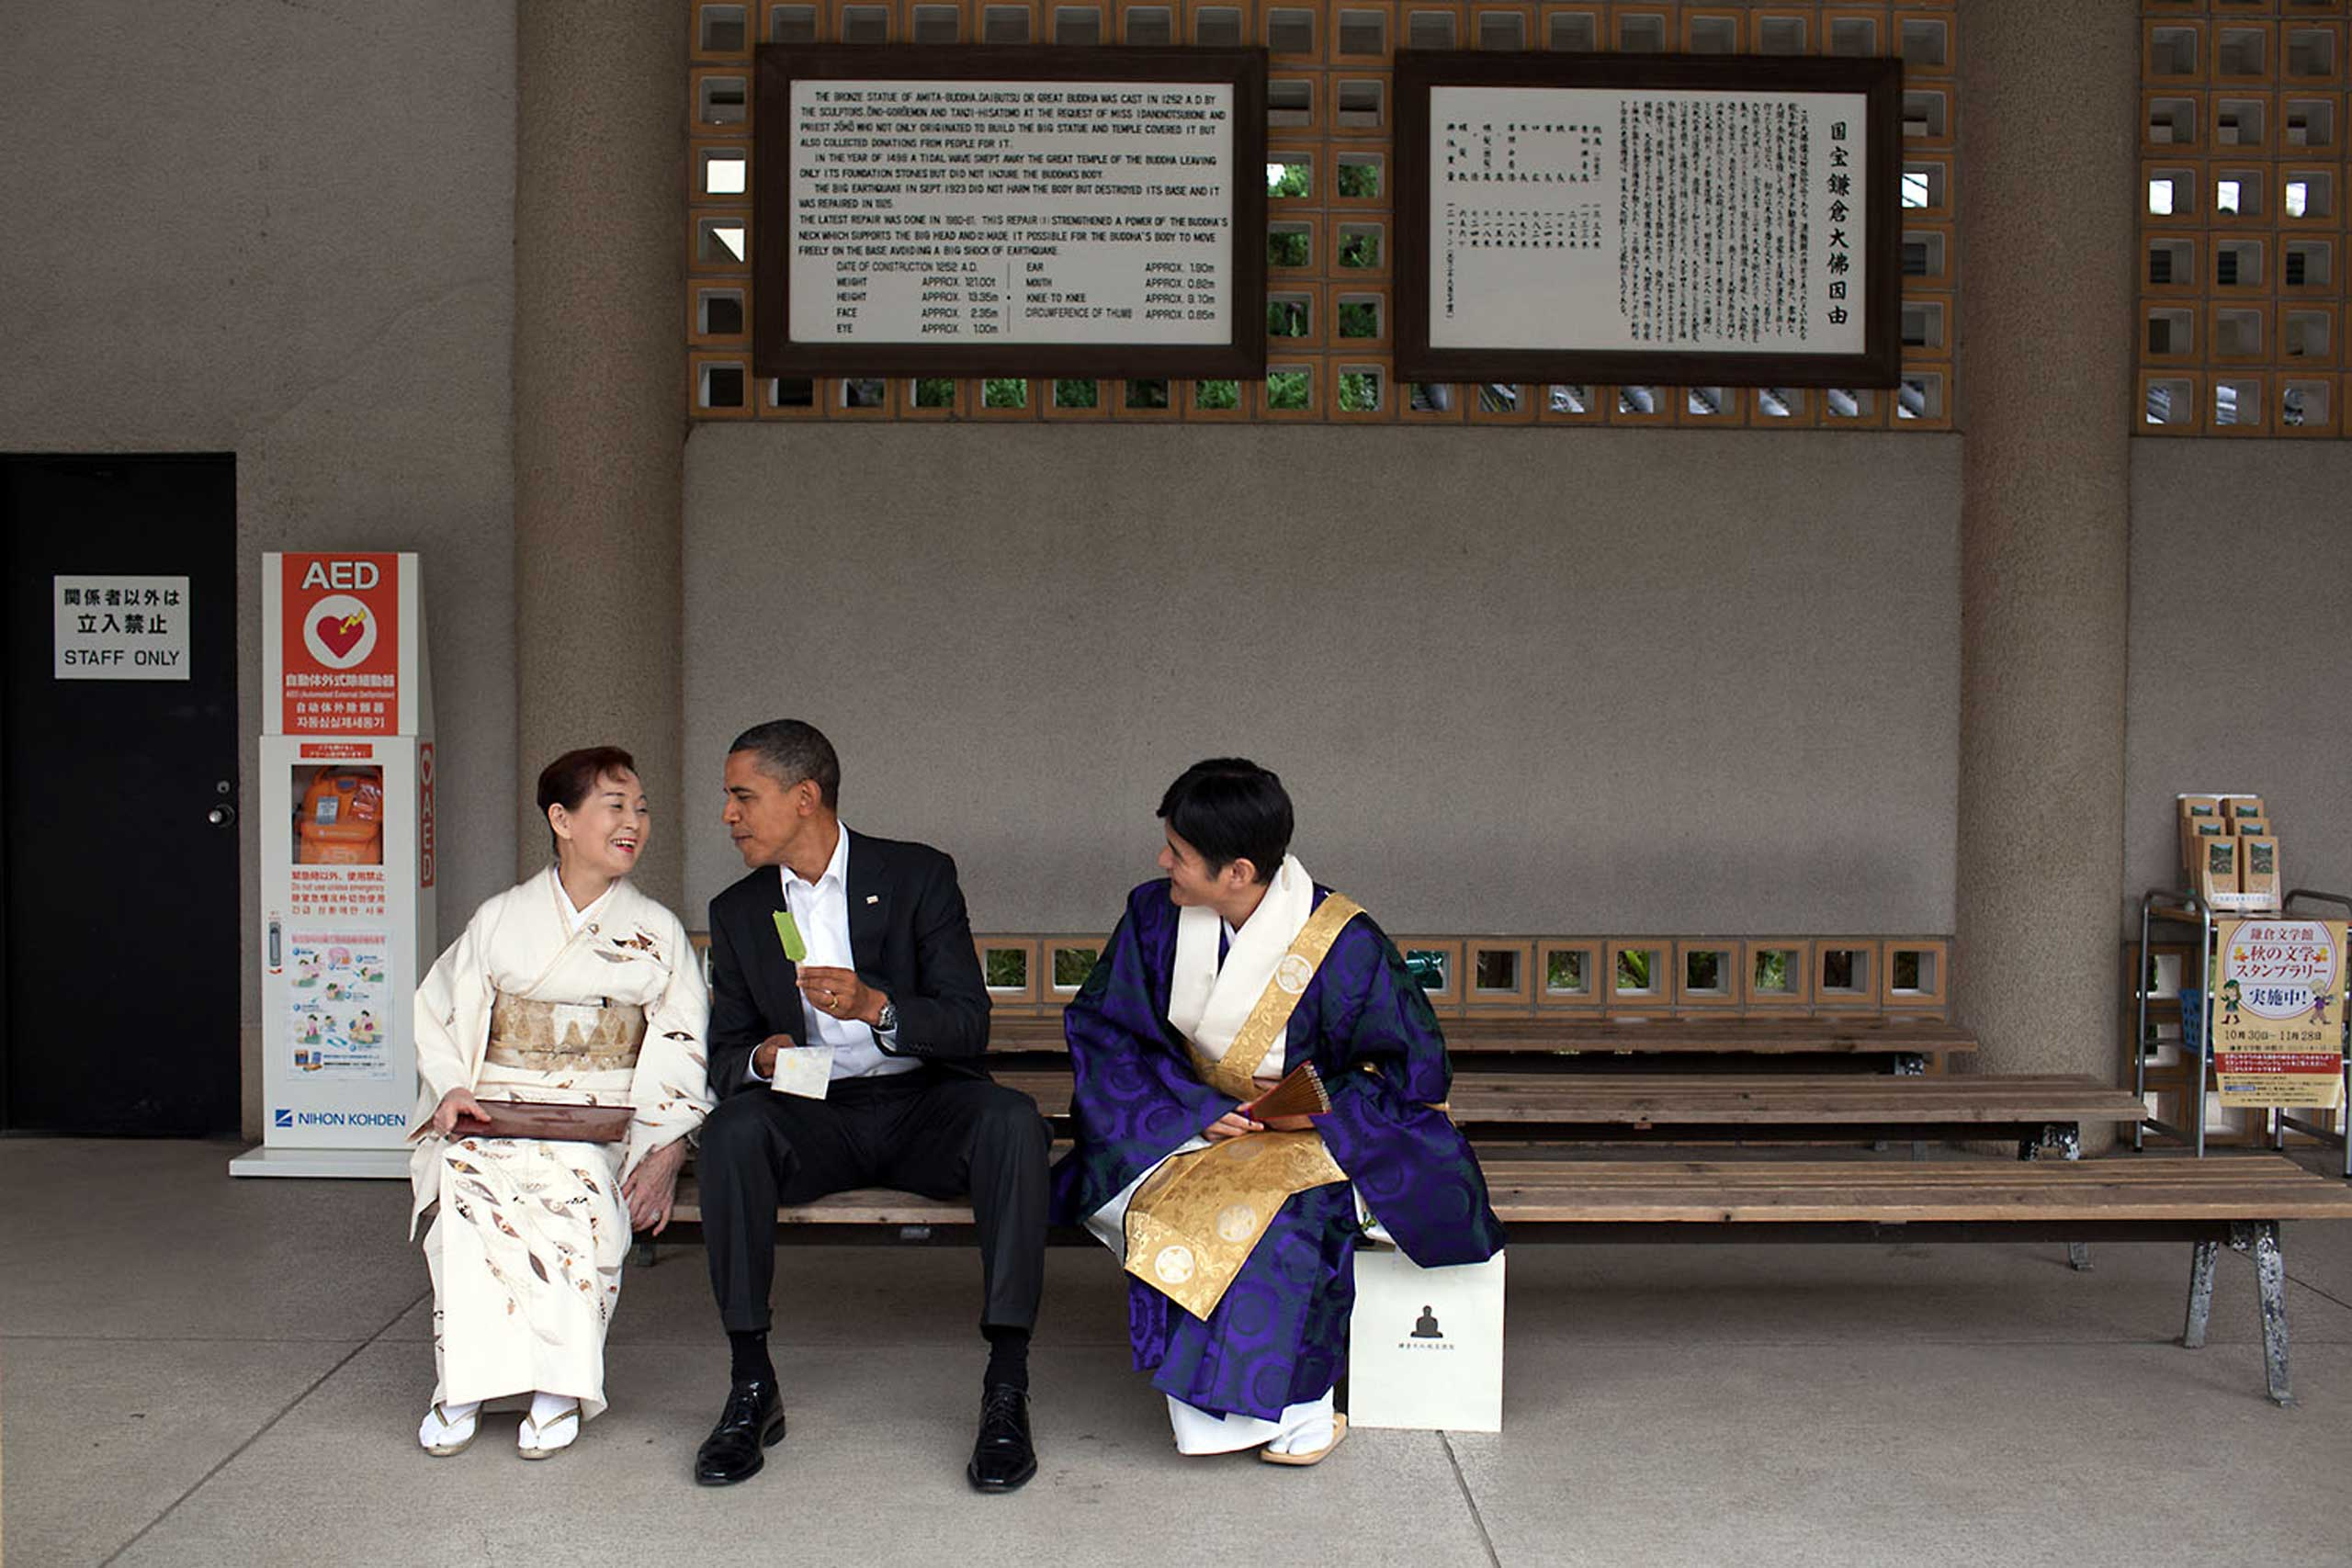 Visiting the Great Buddha of Kamakura, in Japan, the President had a green tea ice cream bar with his hosts, Nov. 14, 2010. He had visited this Buddha as a young child and said he remembered sitting in the exact same place having an ice cream bar.